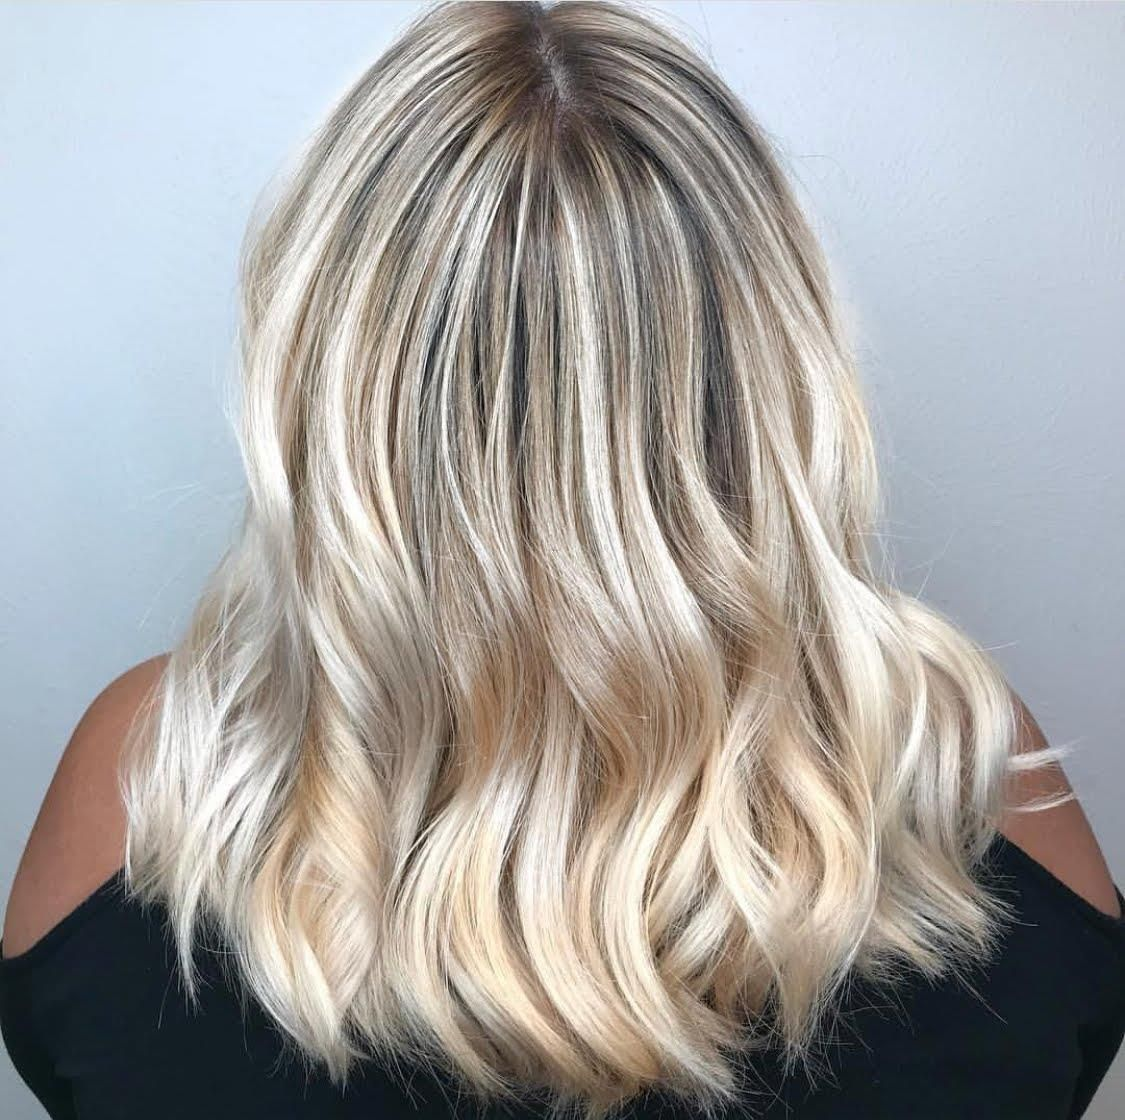 Pin on hair cuts color style ideas for women